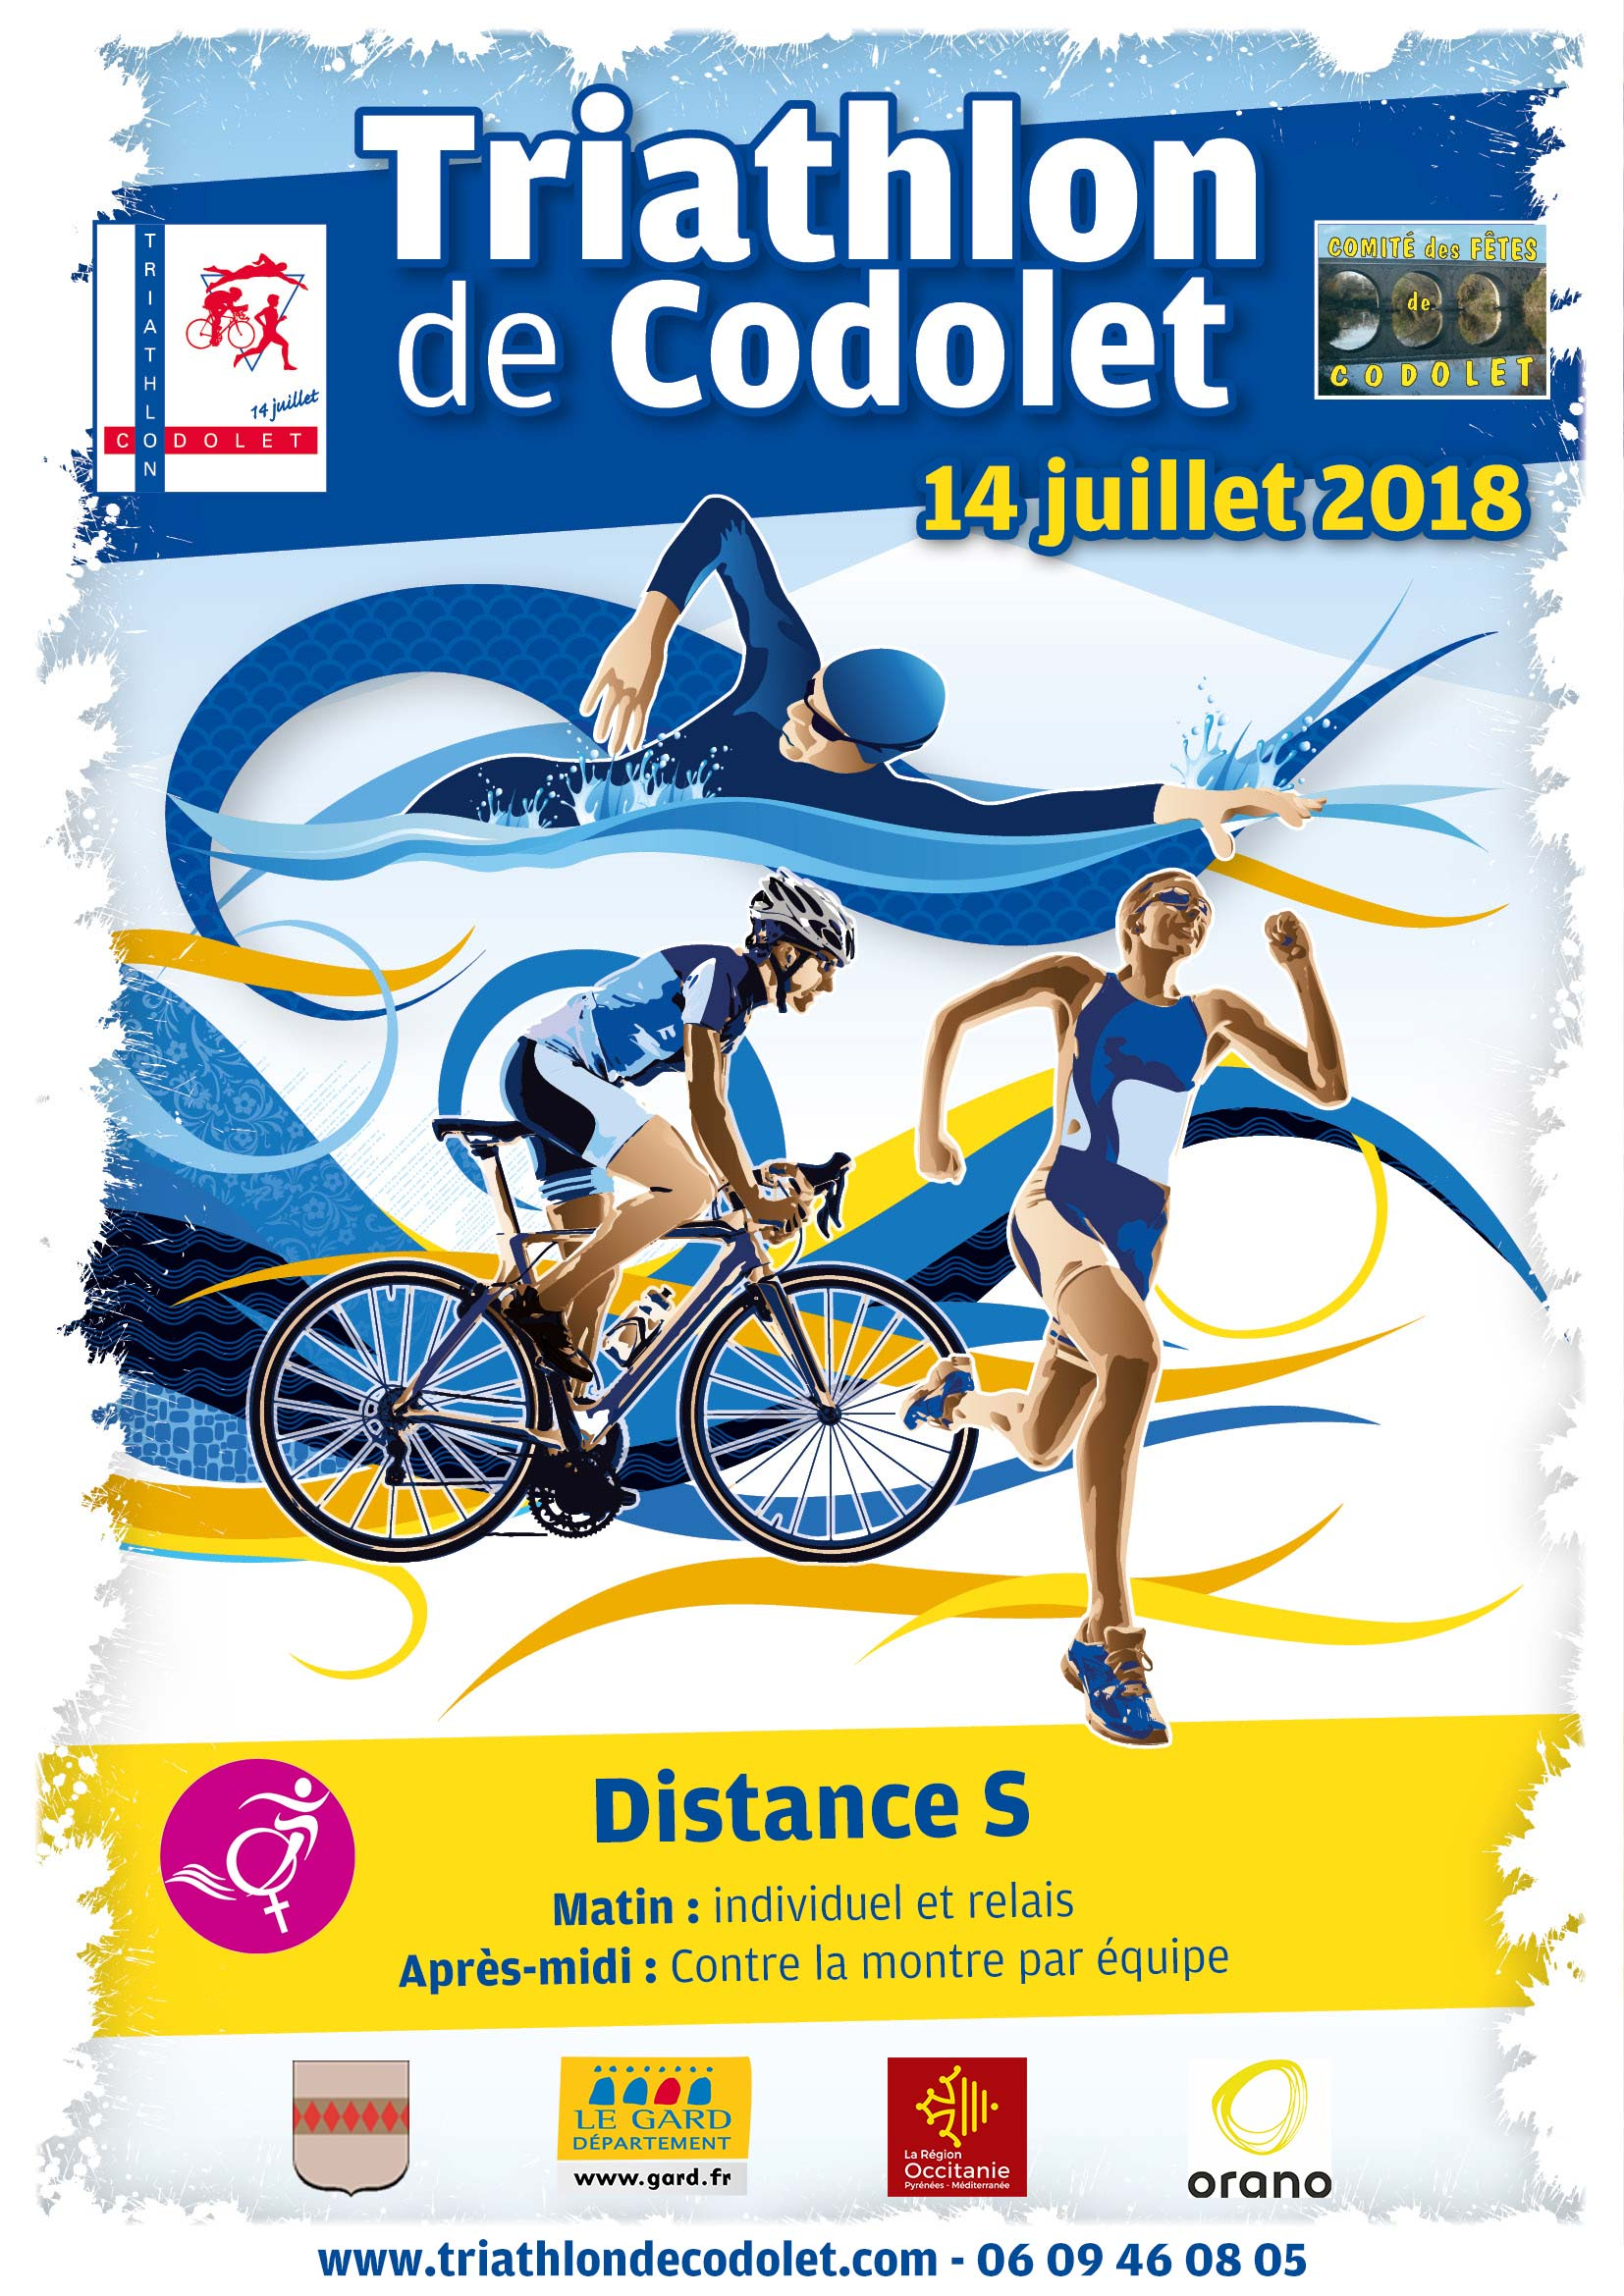 Triathlon de Codolet distance S